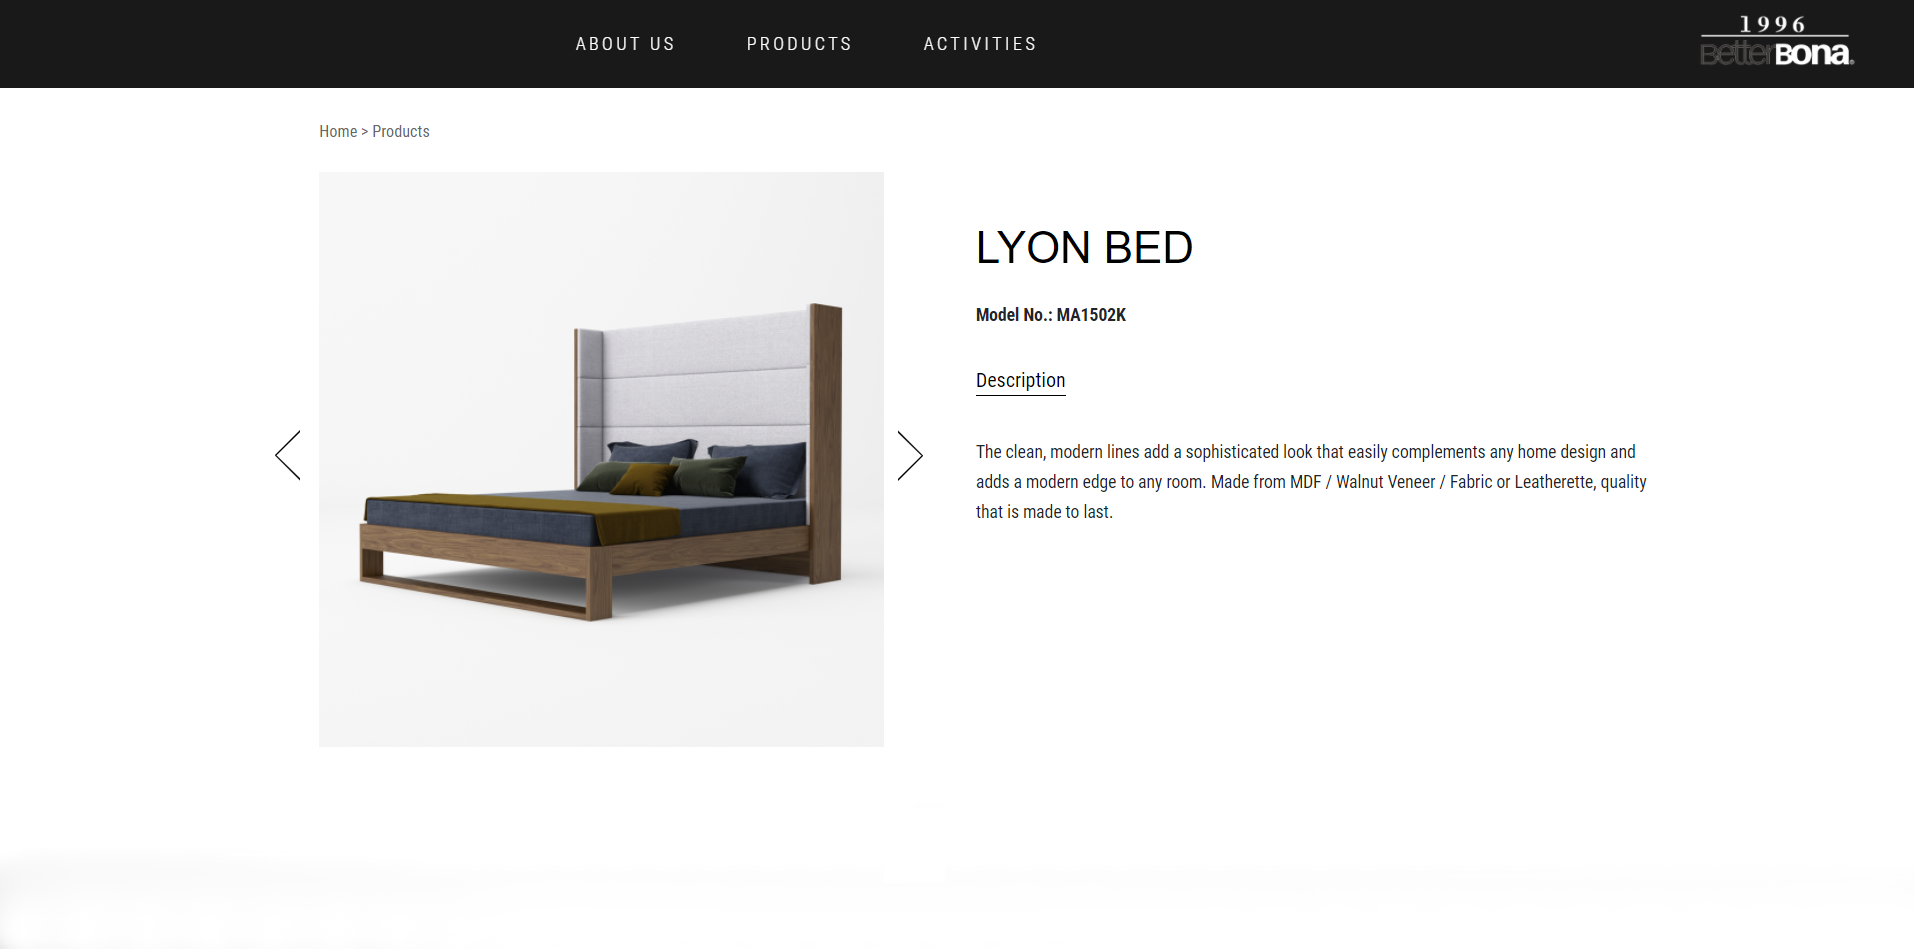 3D Product Render of a Bed for Ecommerce Listing